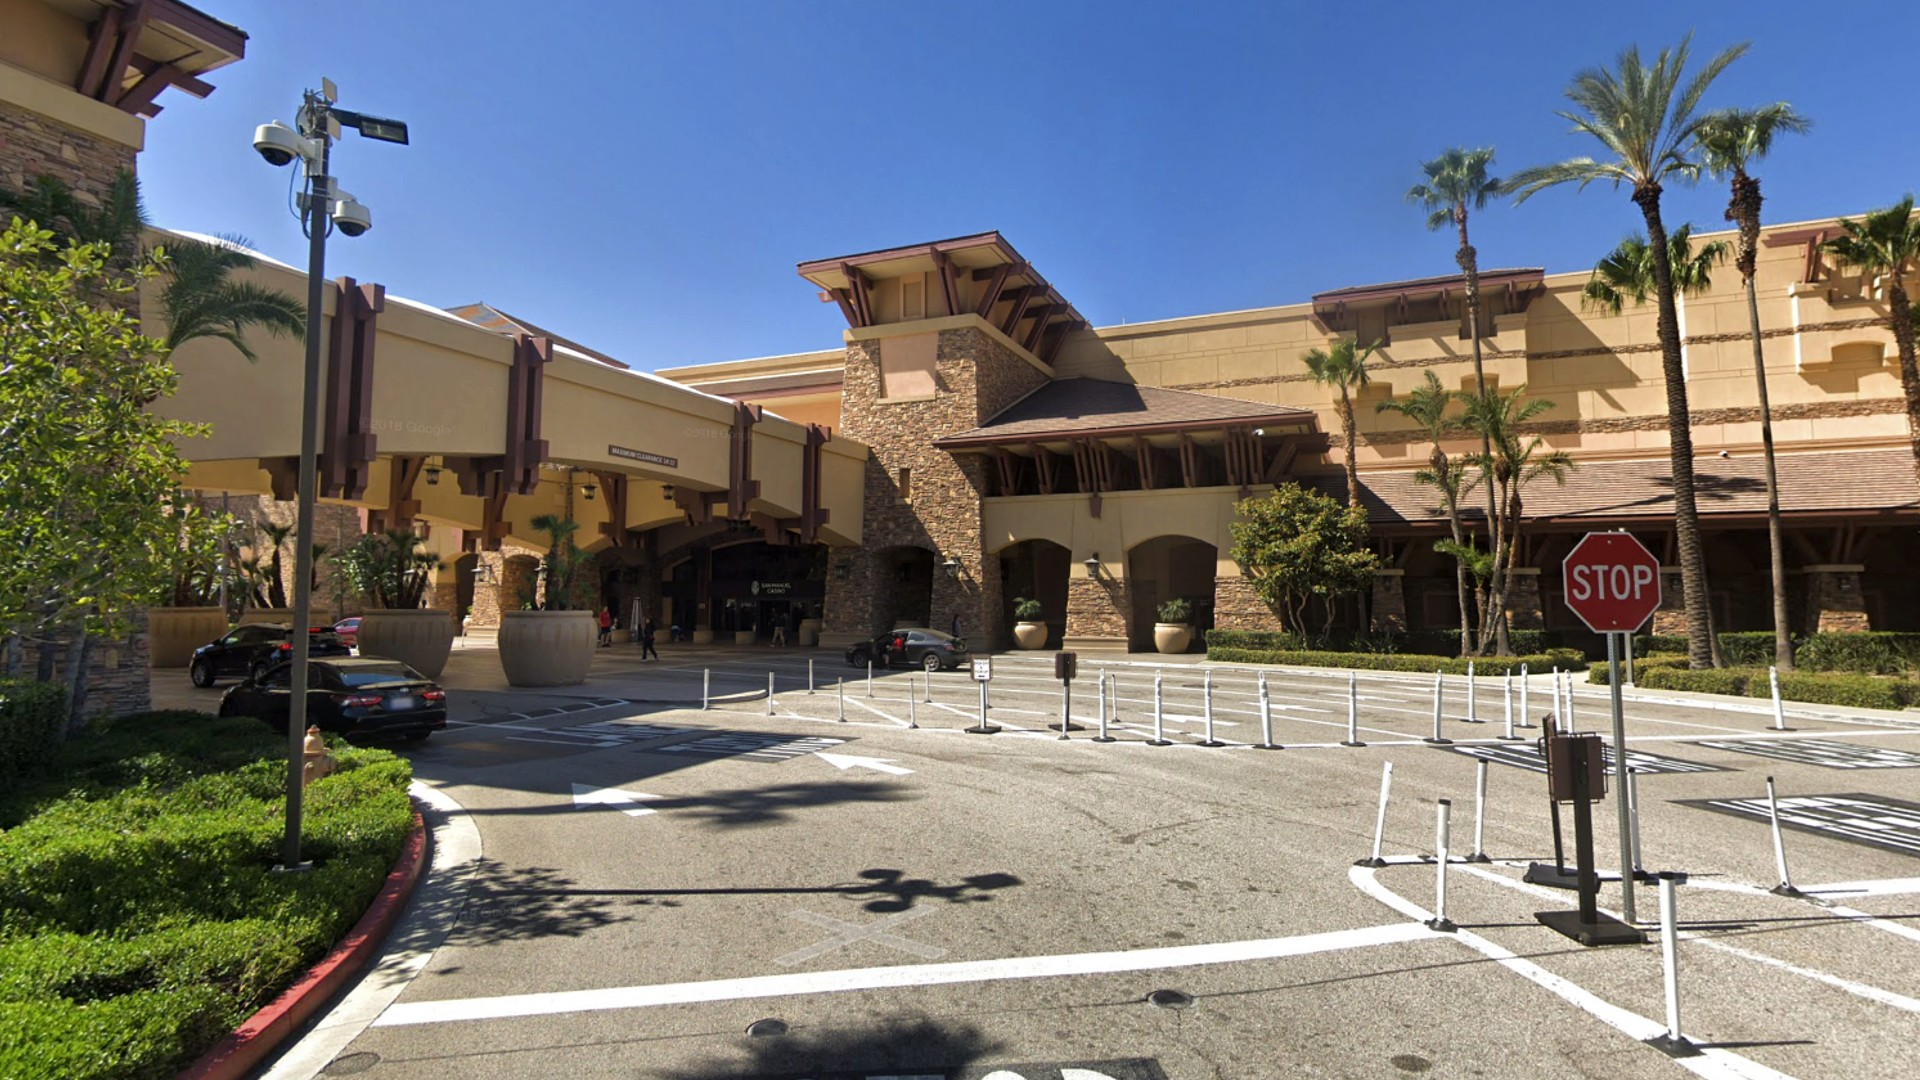 San Manuel Casino is seen in this image taken from Google Maps.